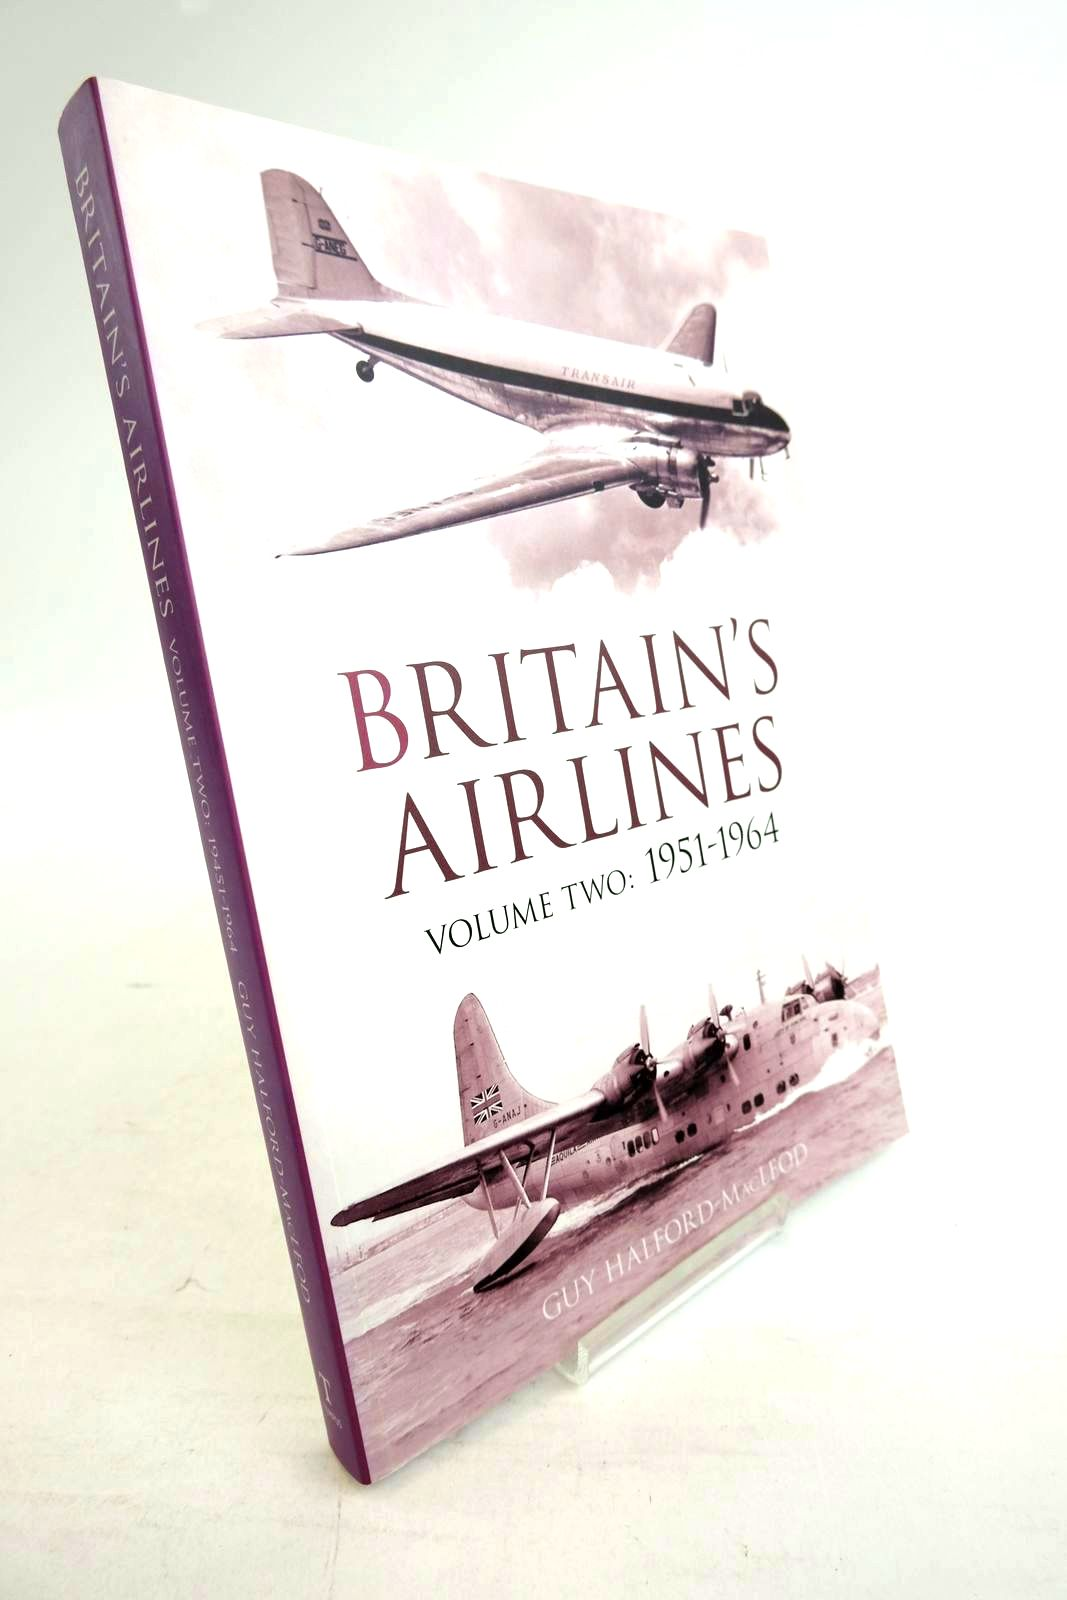 Photo of BRITAIN'S AIRLINES VOLUME TWO: 1951-1964 written by Halford-Macleod, Guy published by Tempus Publishing Ltd (STOCK CODE: 1320277)  for sale by Stella & Rose's Books